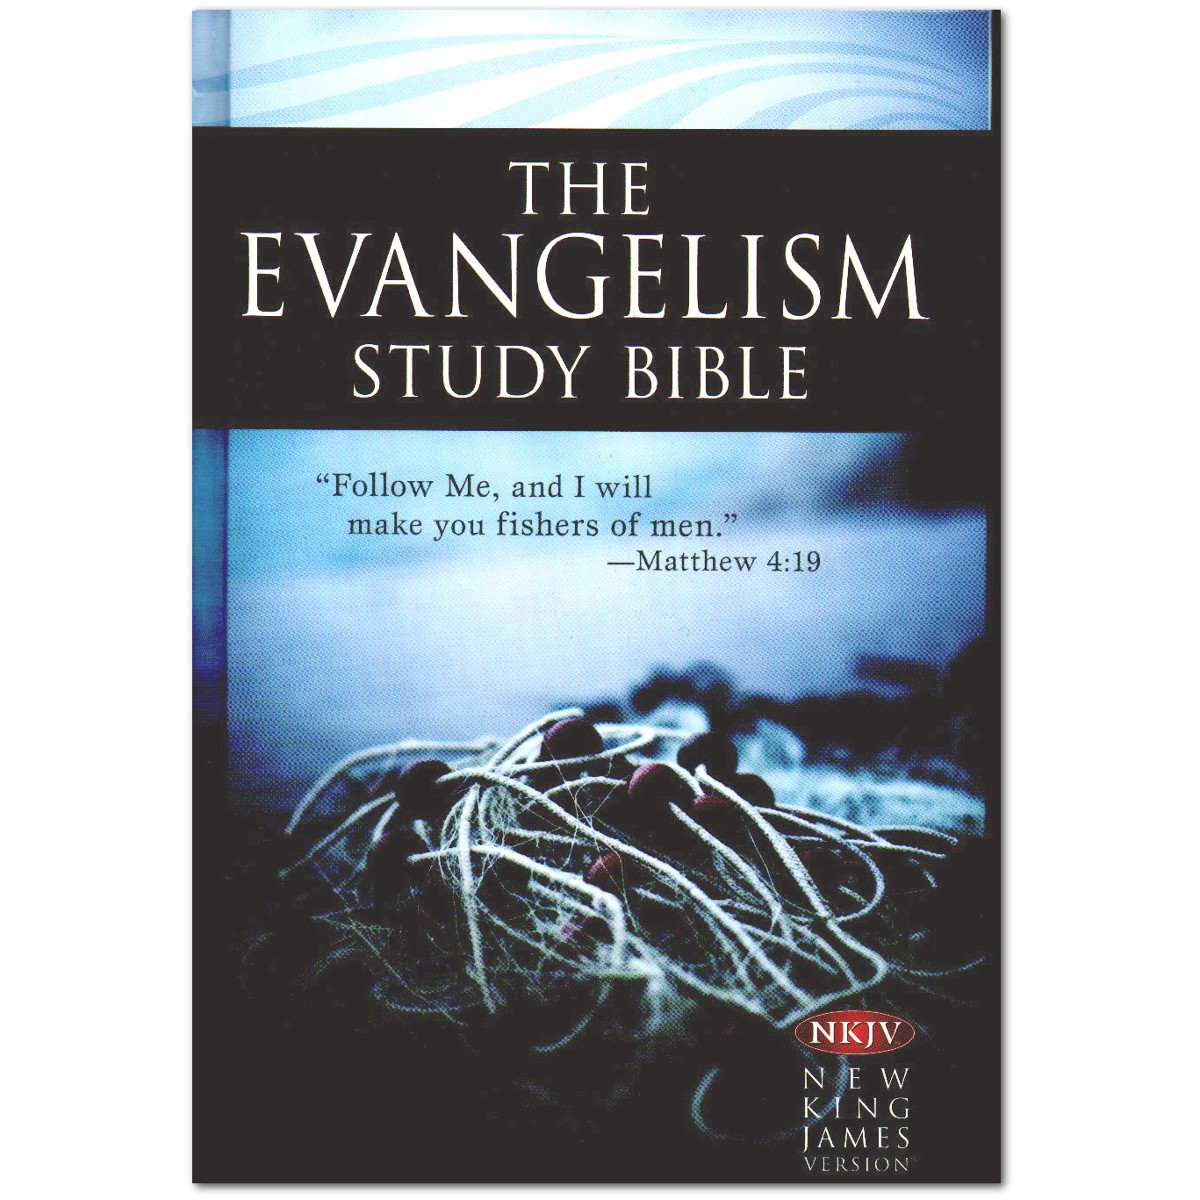 The Gospel. Clear But Maybe Too Simple: The Evangelism Study Bible